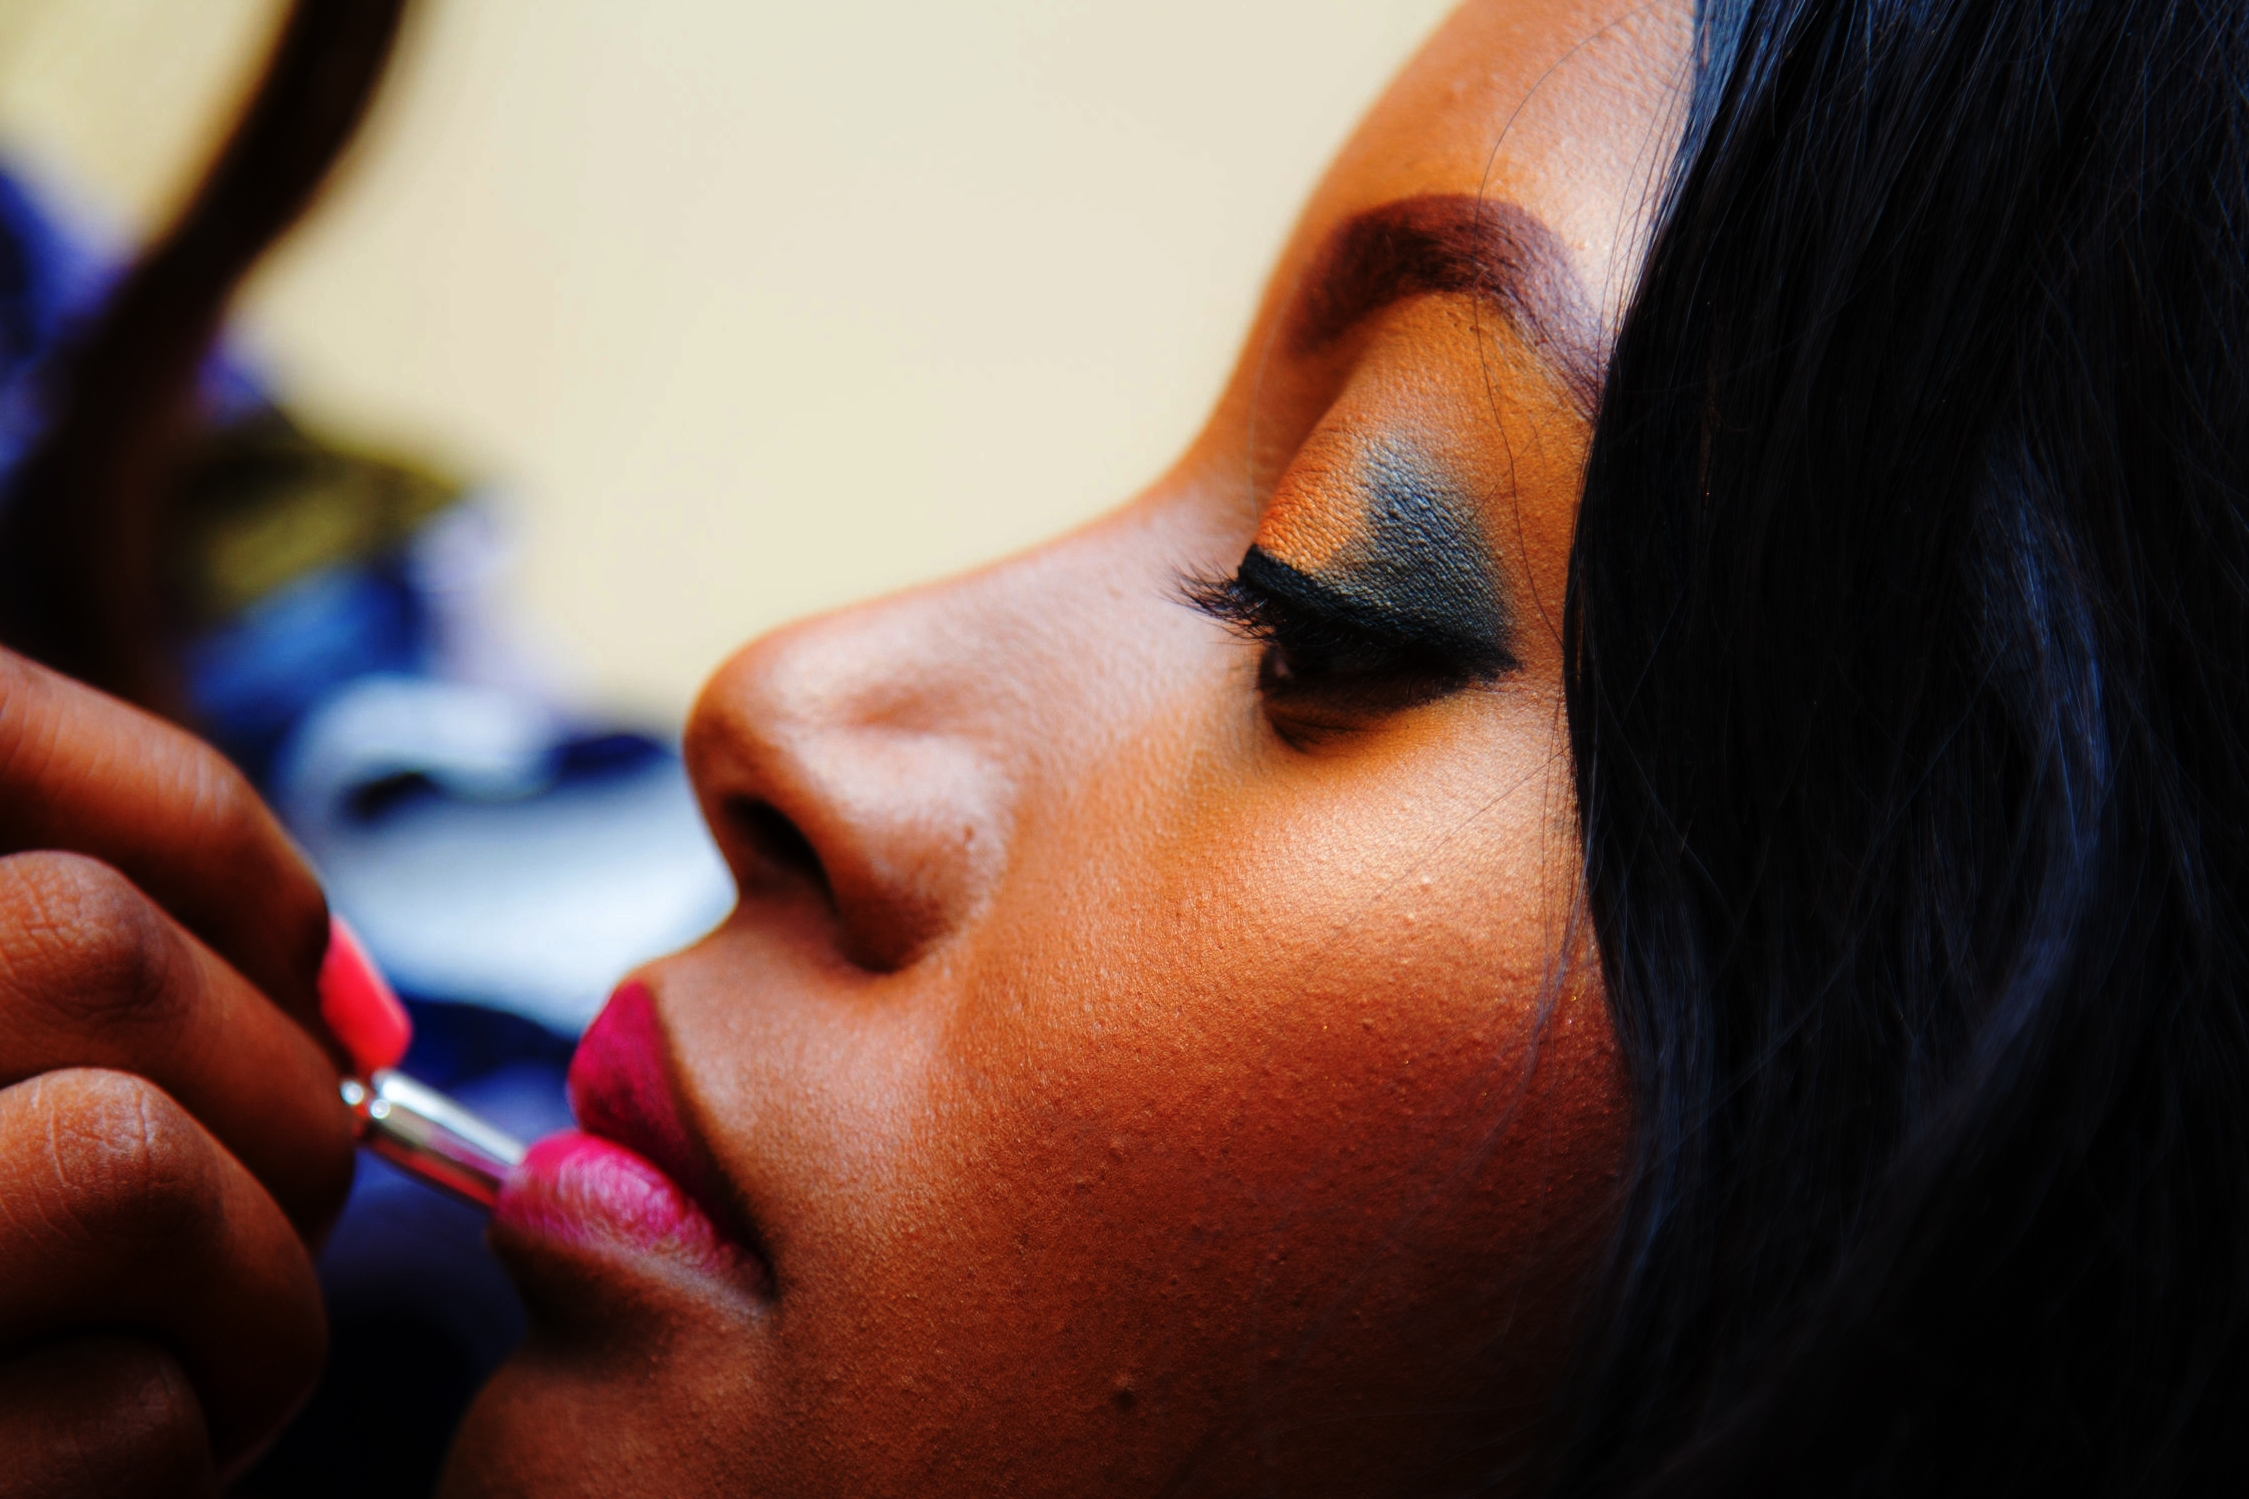 Bridal & Special Events - MAKE-UP APPLICATION